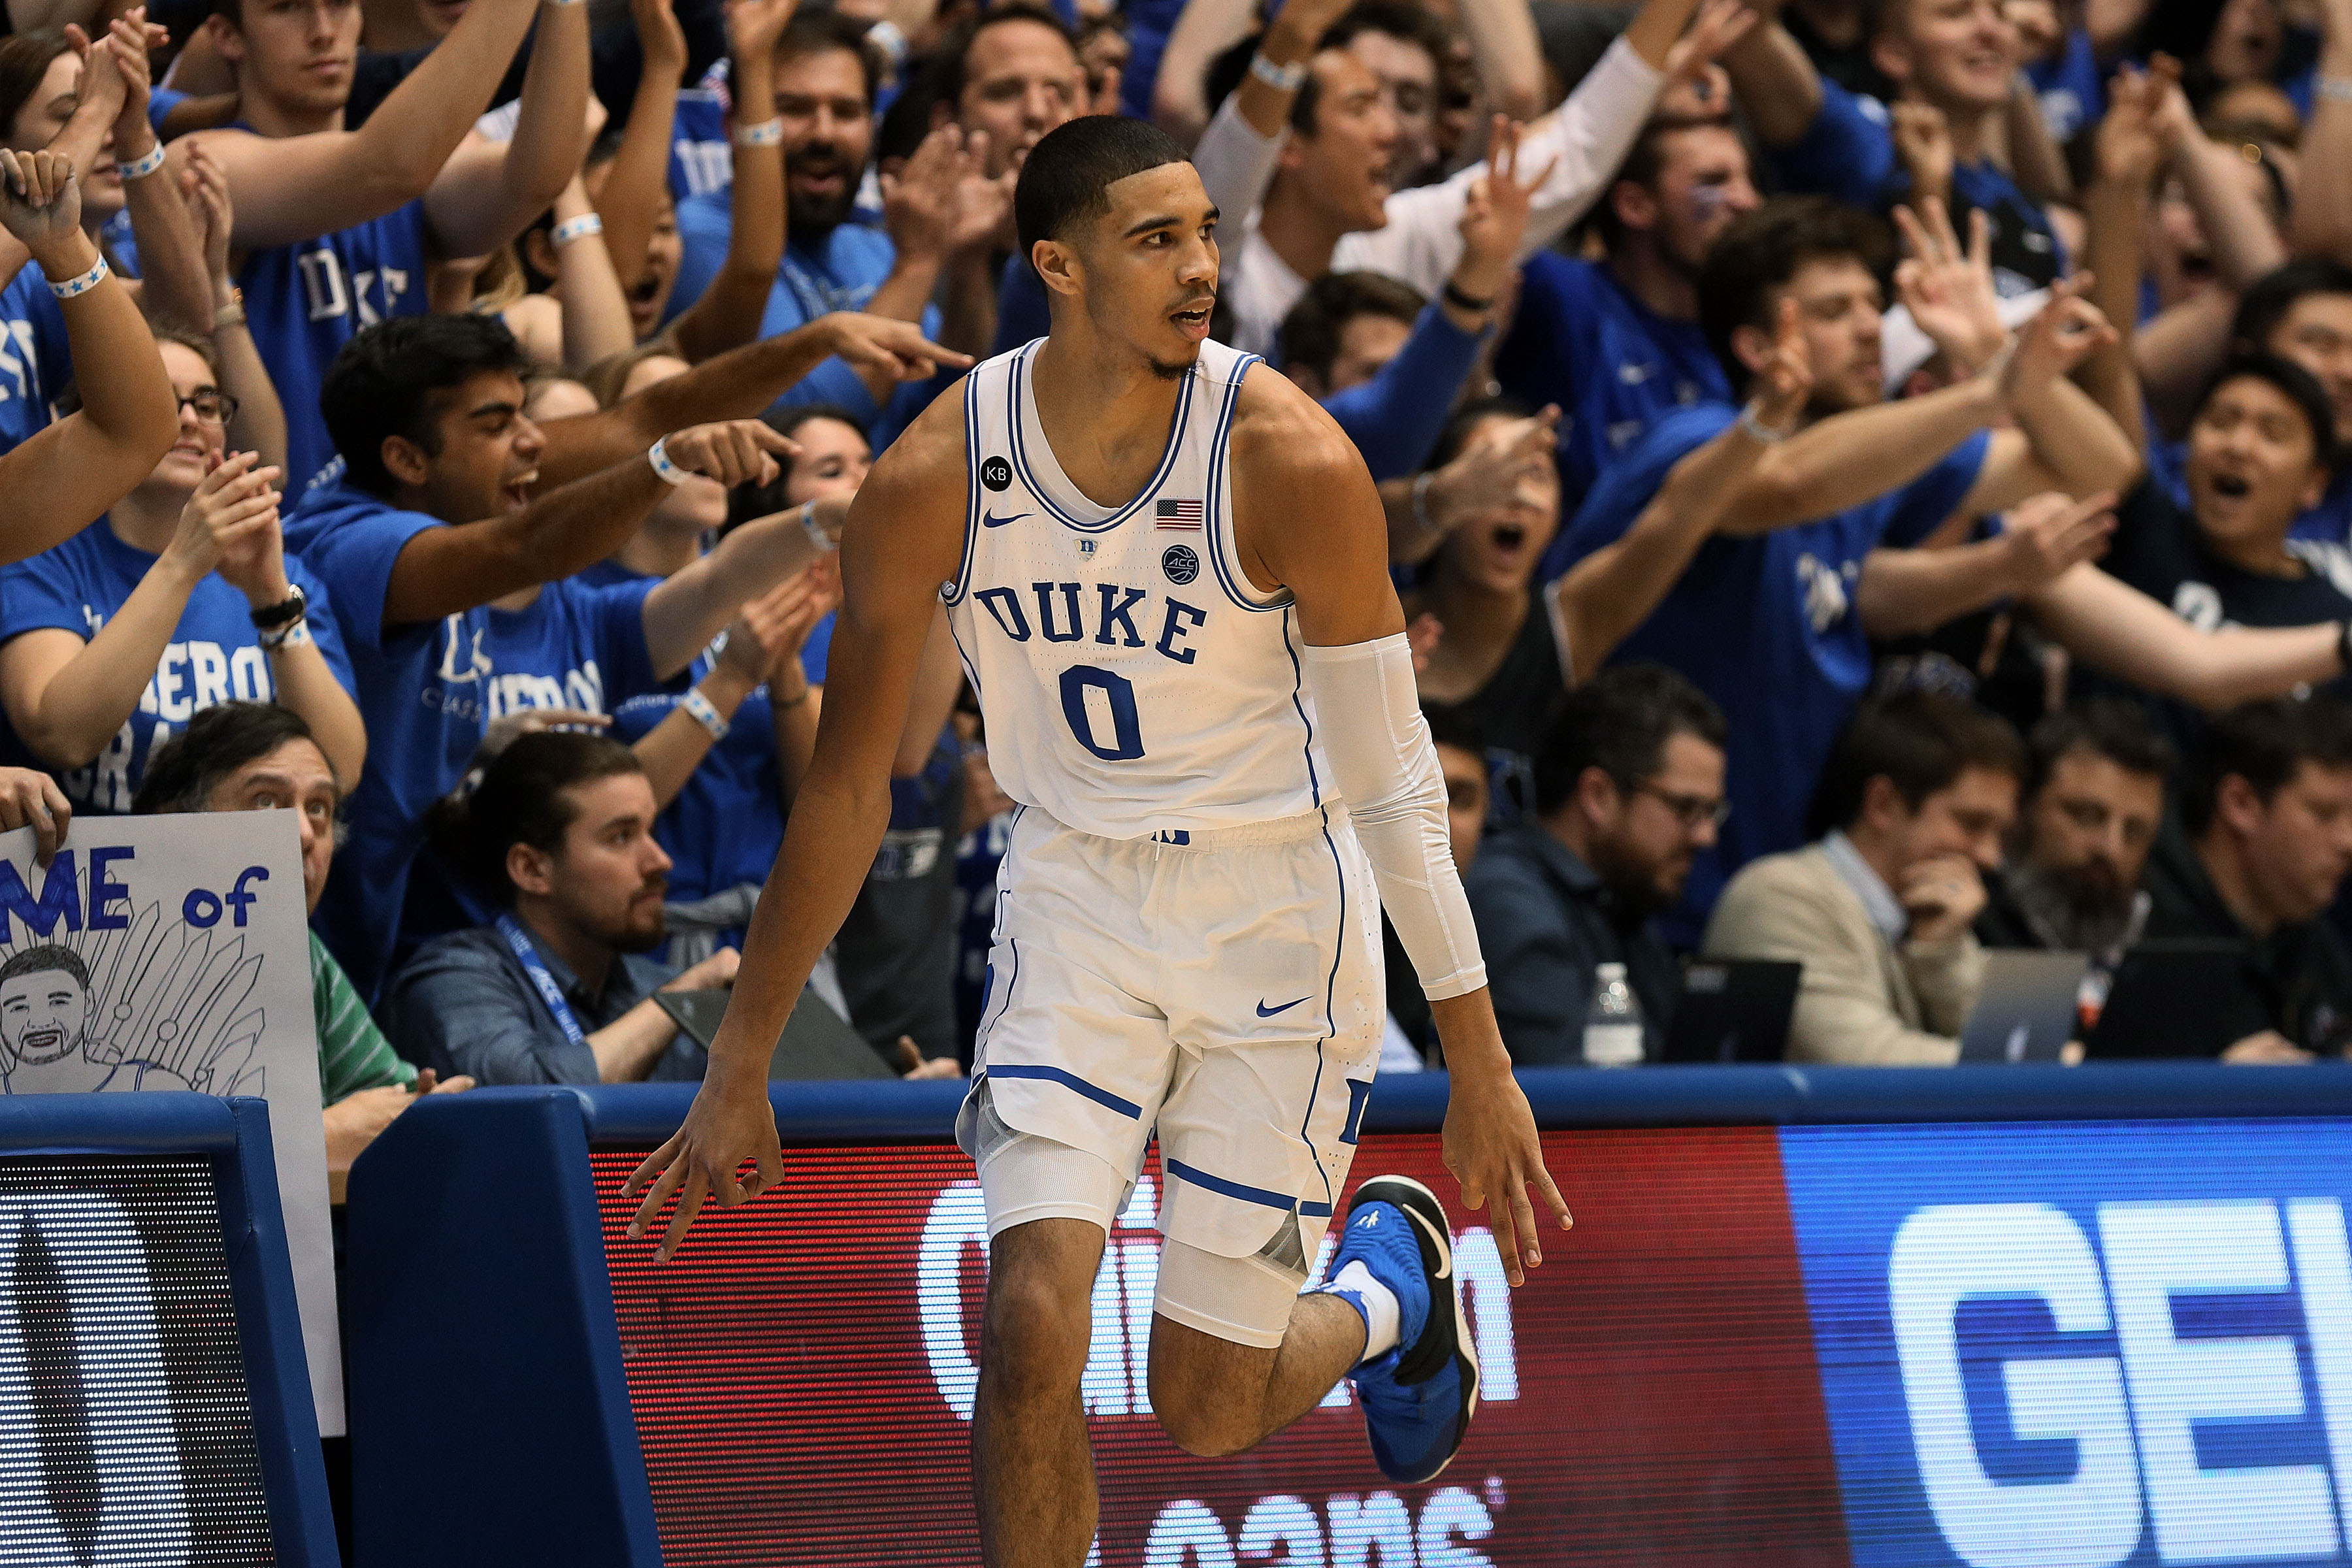 9833580-ncaa-basketball-north-carolina-state-at-duke-2